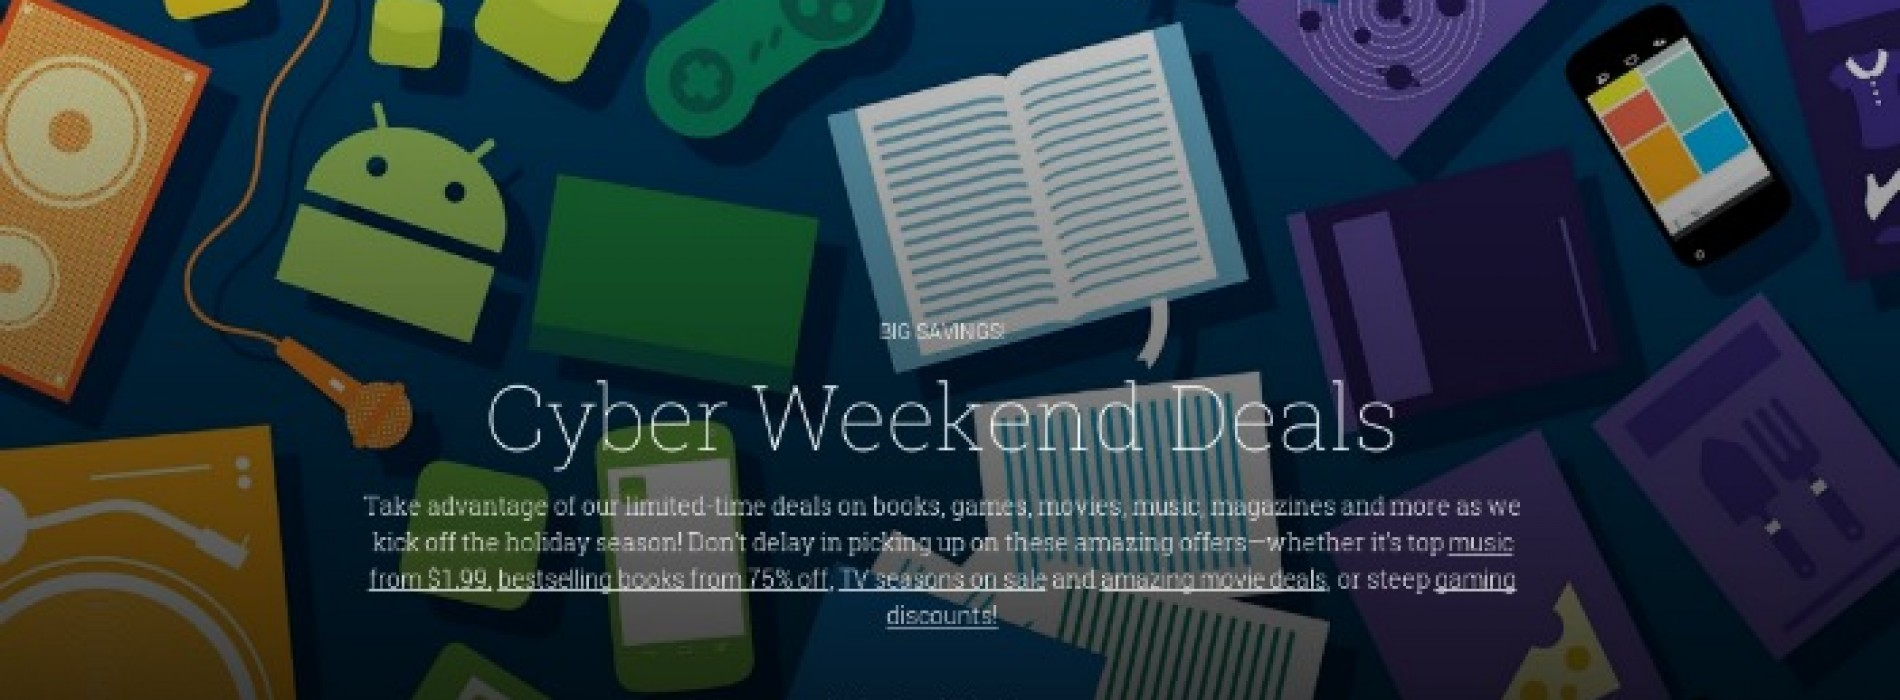 Google dishes deals on apps, magazines, movies and more with Cyber Weekend sales